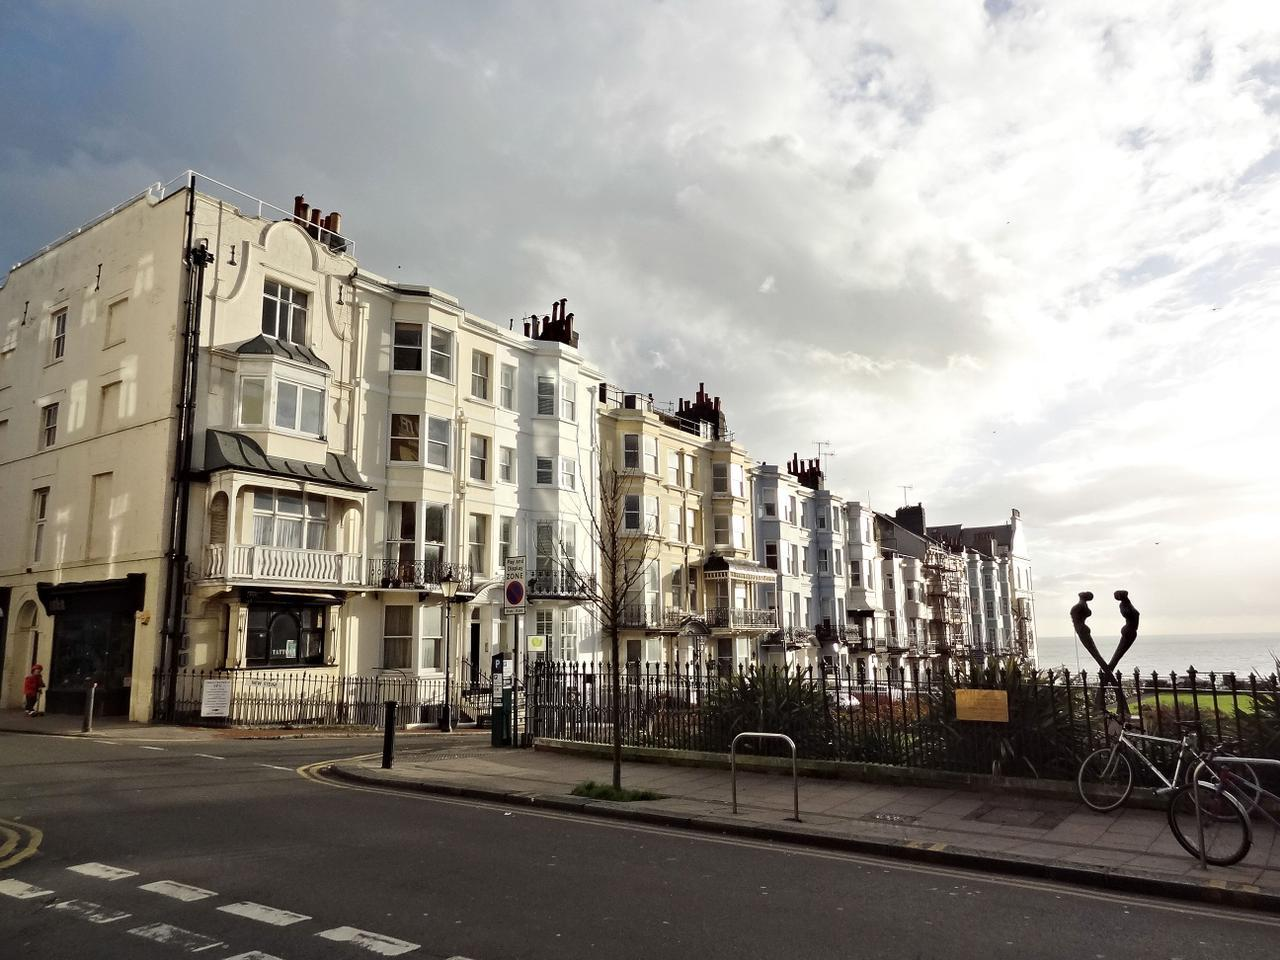 New Steine Apartment , Brighton & Hove Images - 3